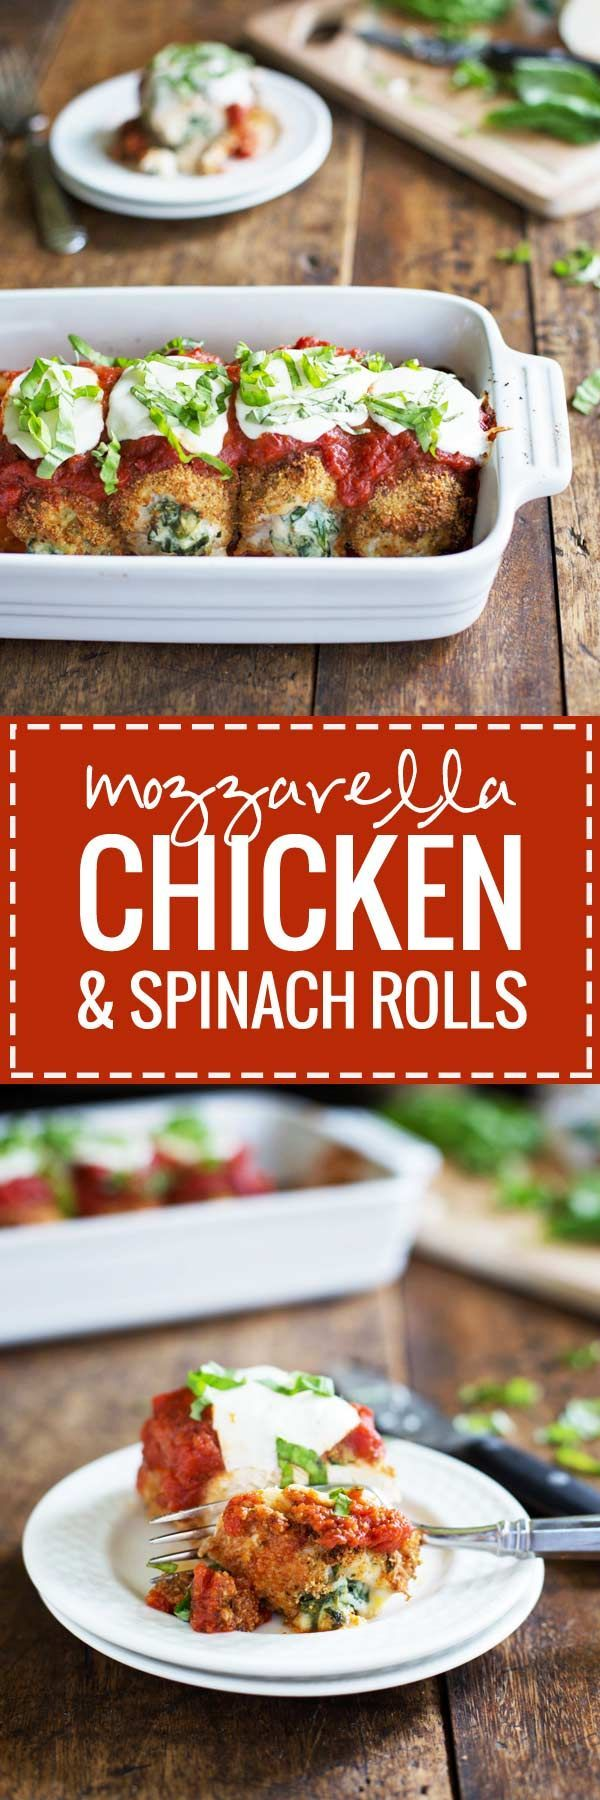 Baked Mozzarella and Chicken Spinach Rolls | pinchofyum.com